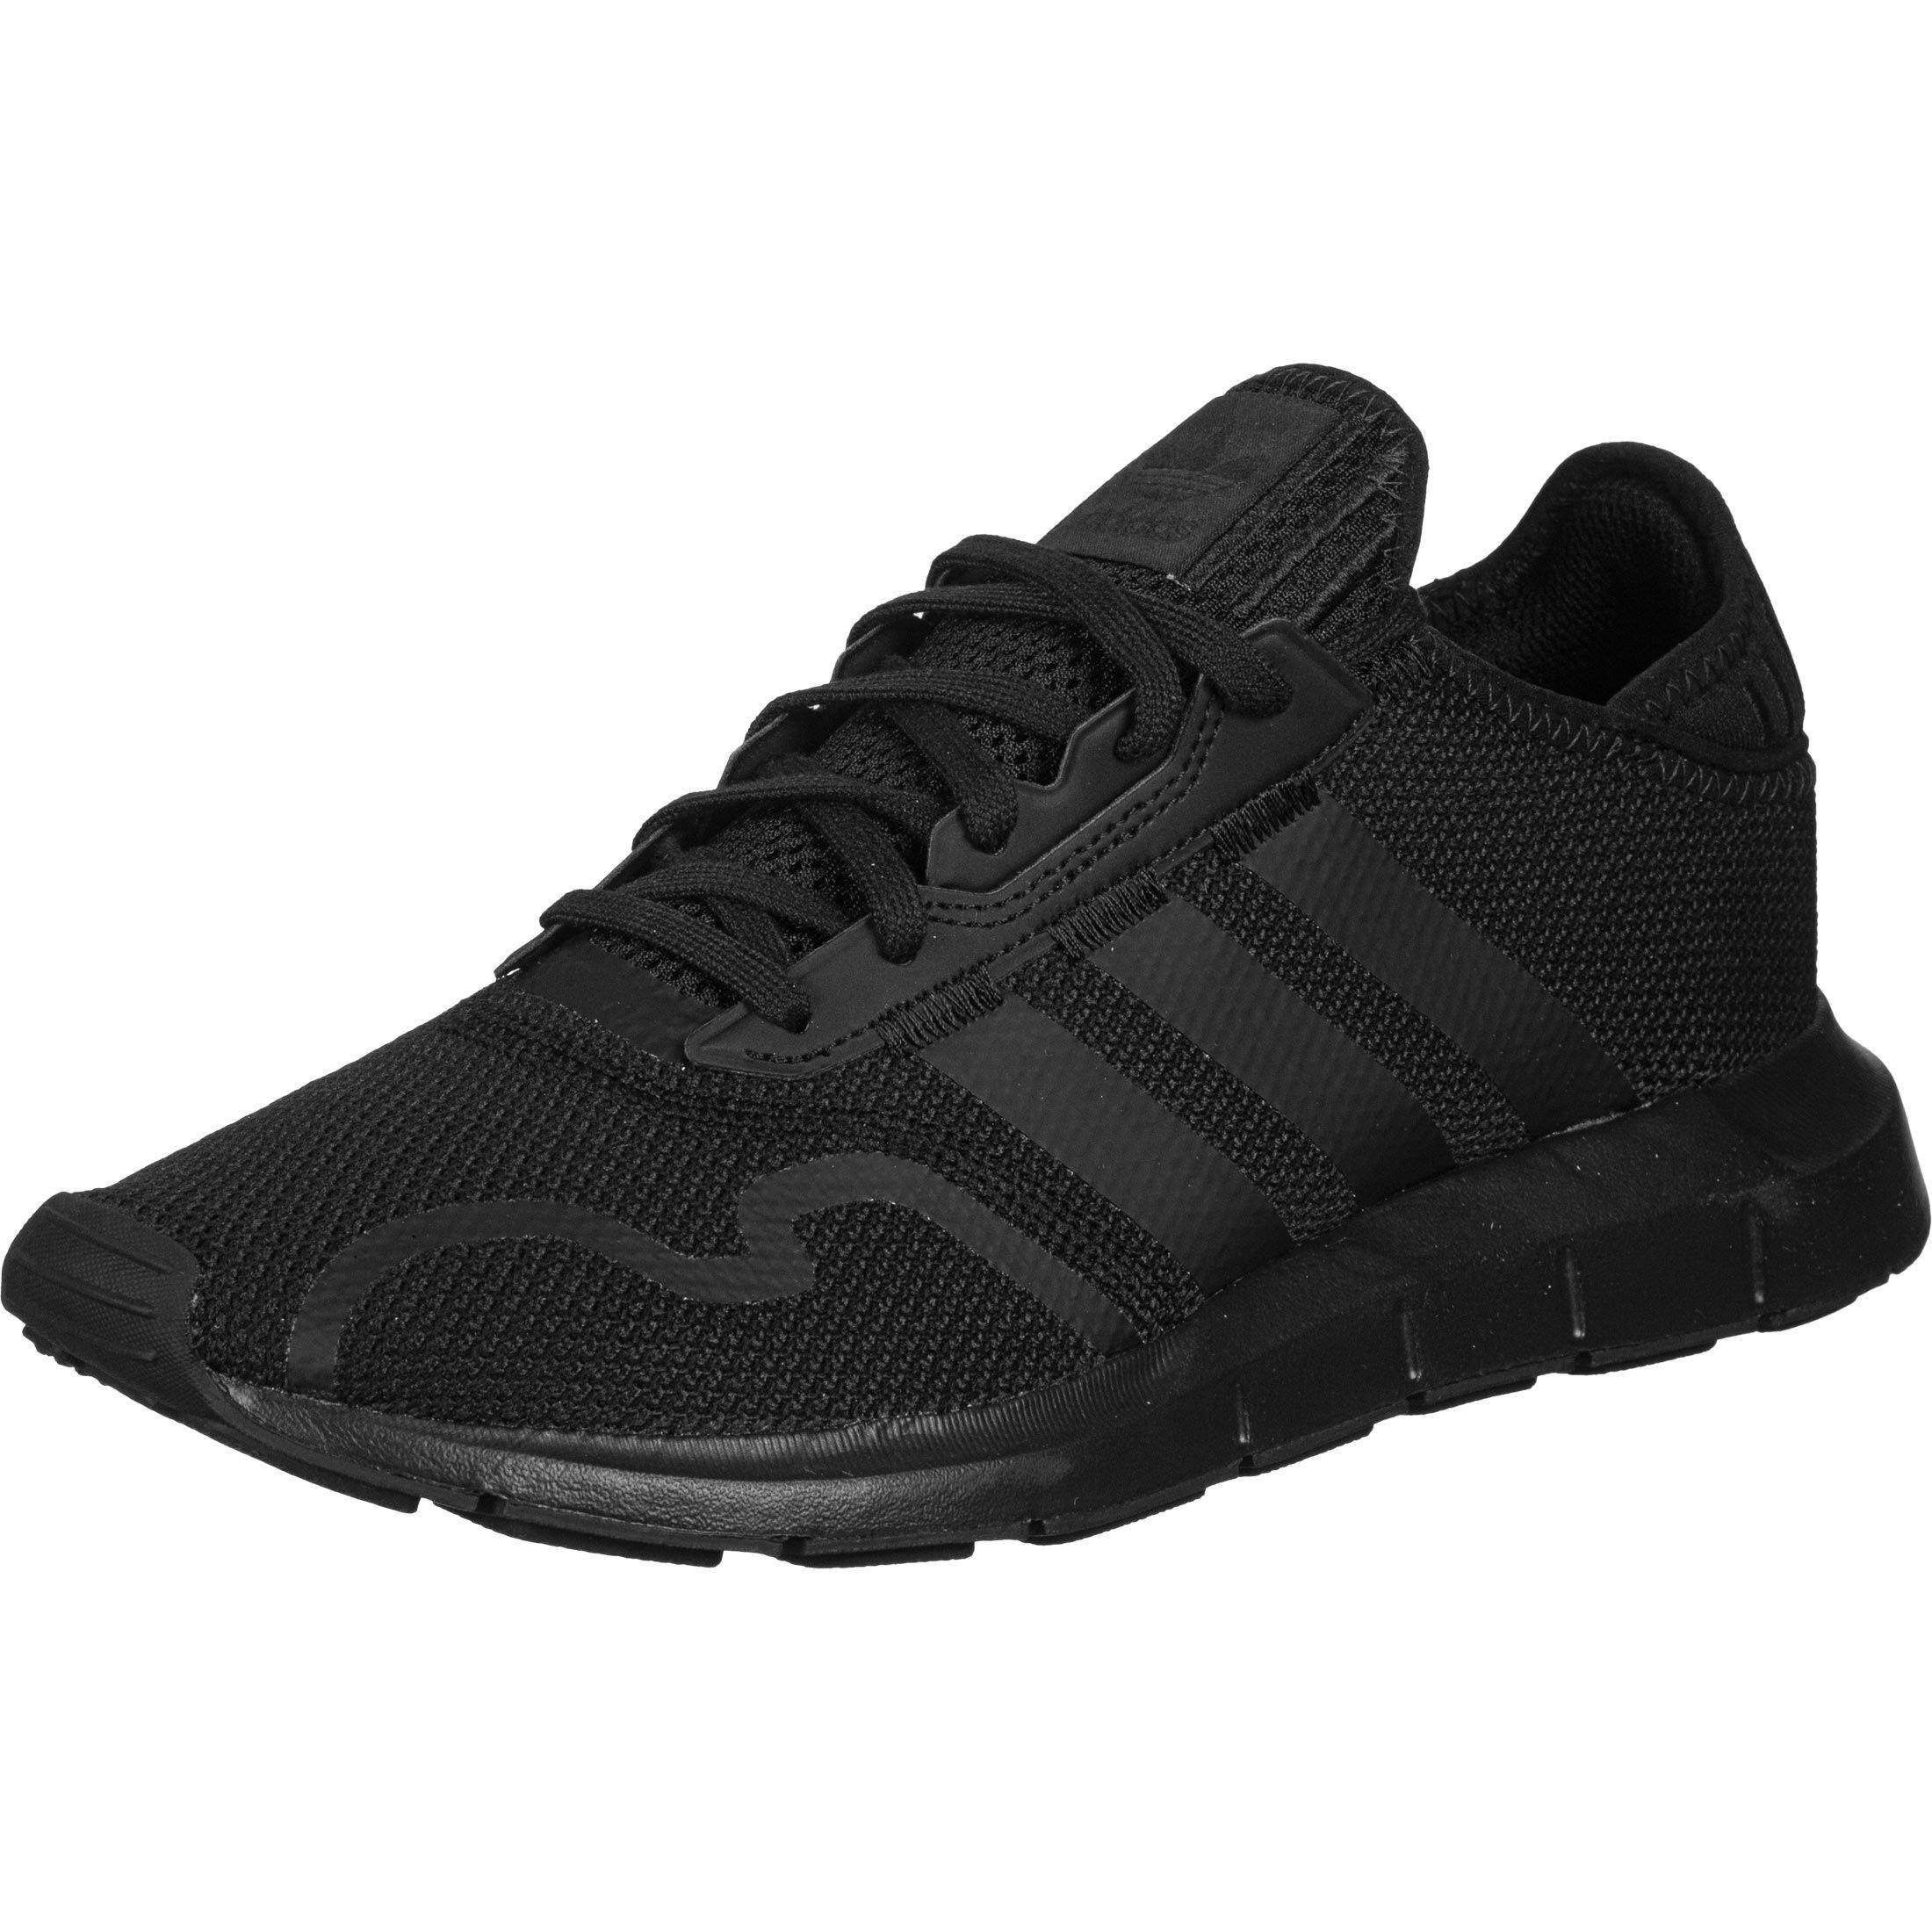 adidas Swift Run X, 36 EU, homme, noir